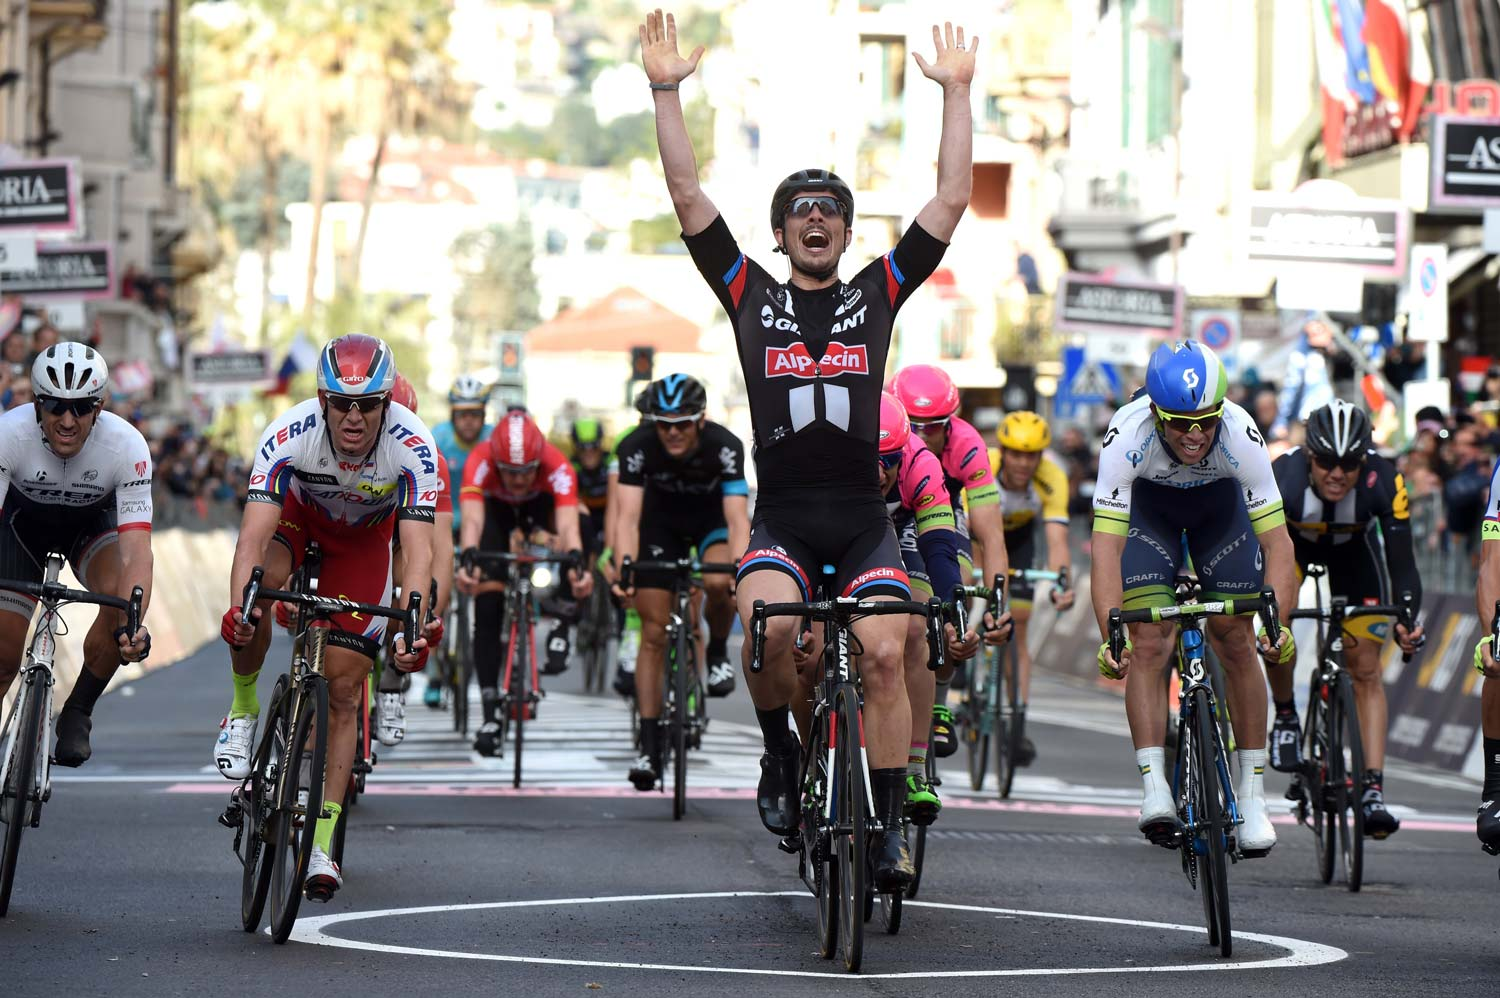 John Degenkolb takes the win in 2015 ahead of Michael Matthews.